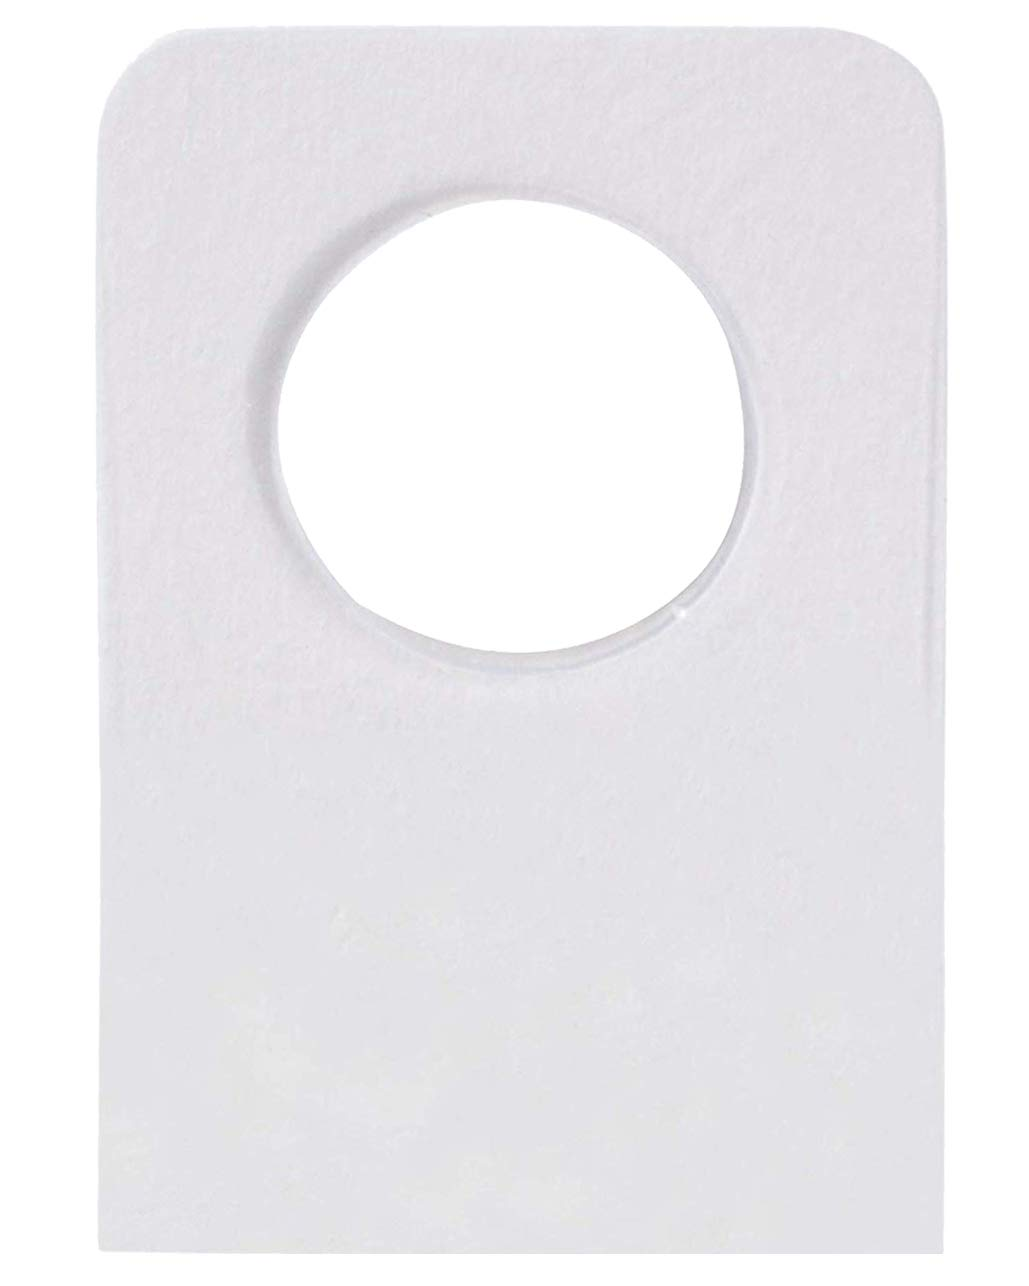 Hang Tabs - 1000-Pack Hanging Display Tabs with Peel and Stick Adhesive, Round Hole Design, for Retail Store Display, Pegboard and Slatwall Hook Tabs, Clear, 1.25 x 0.88 Inches